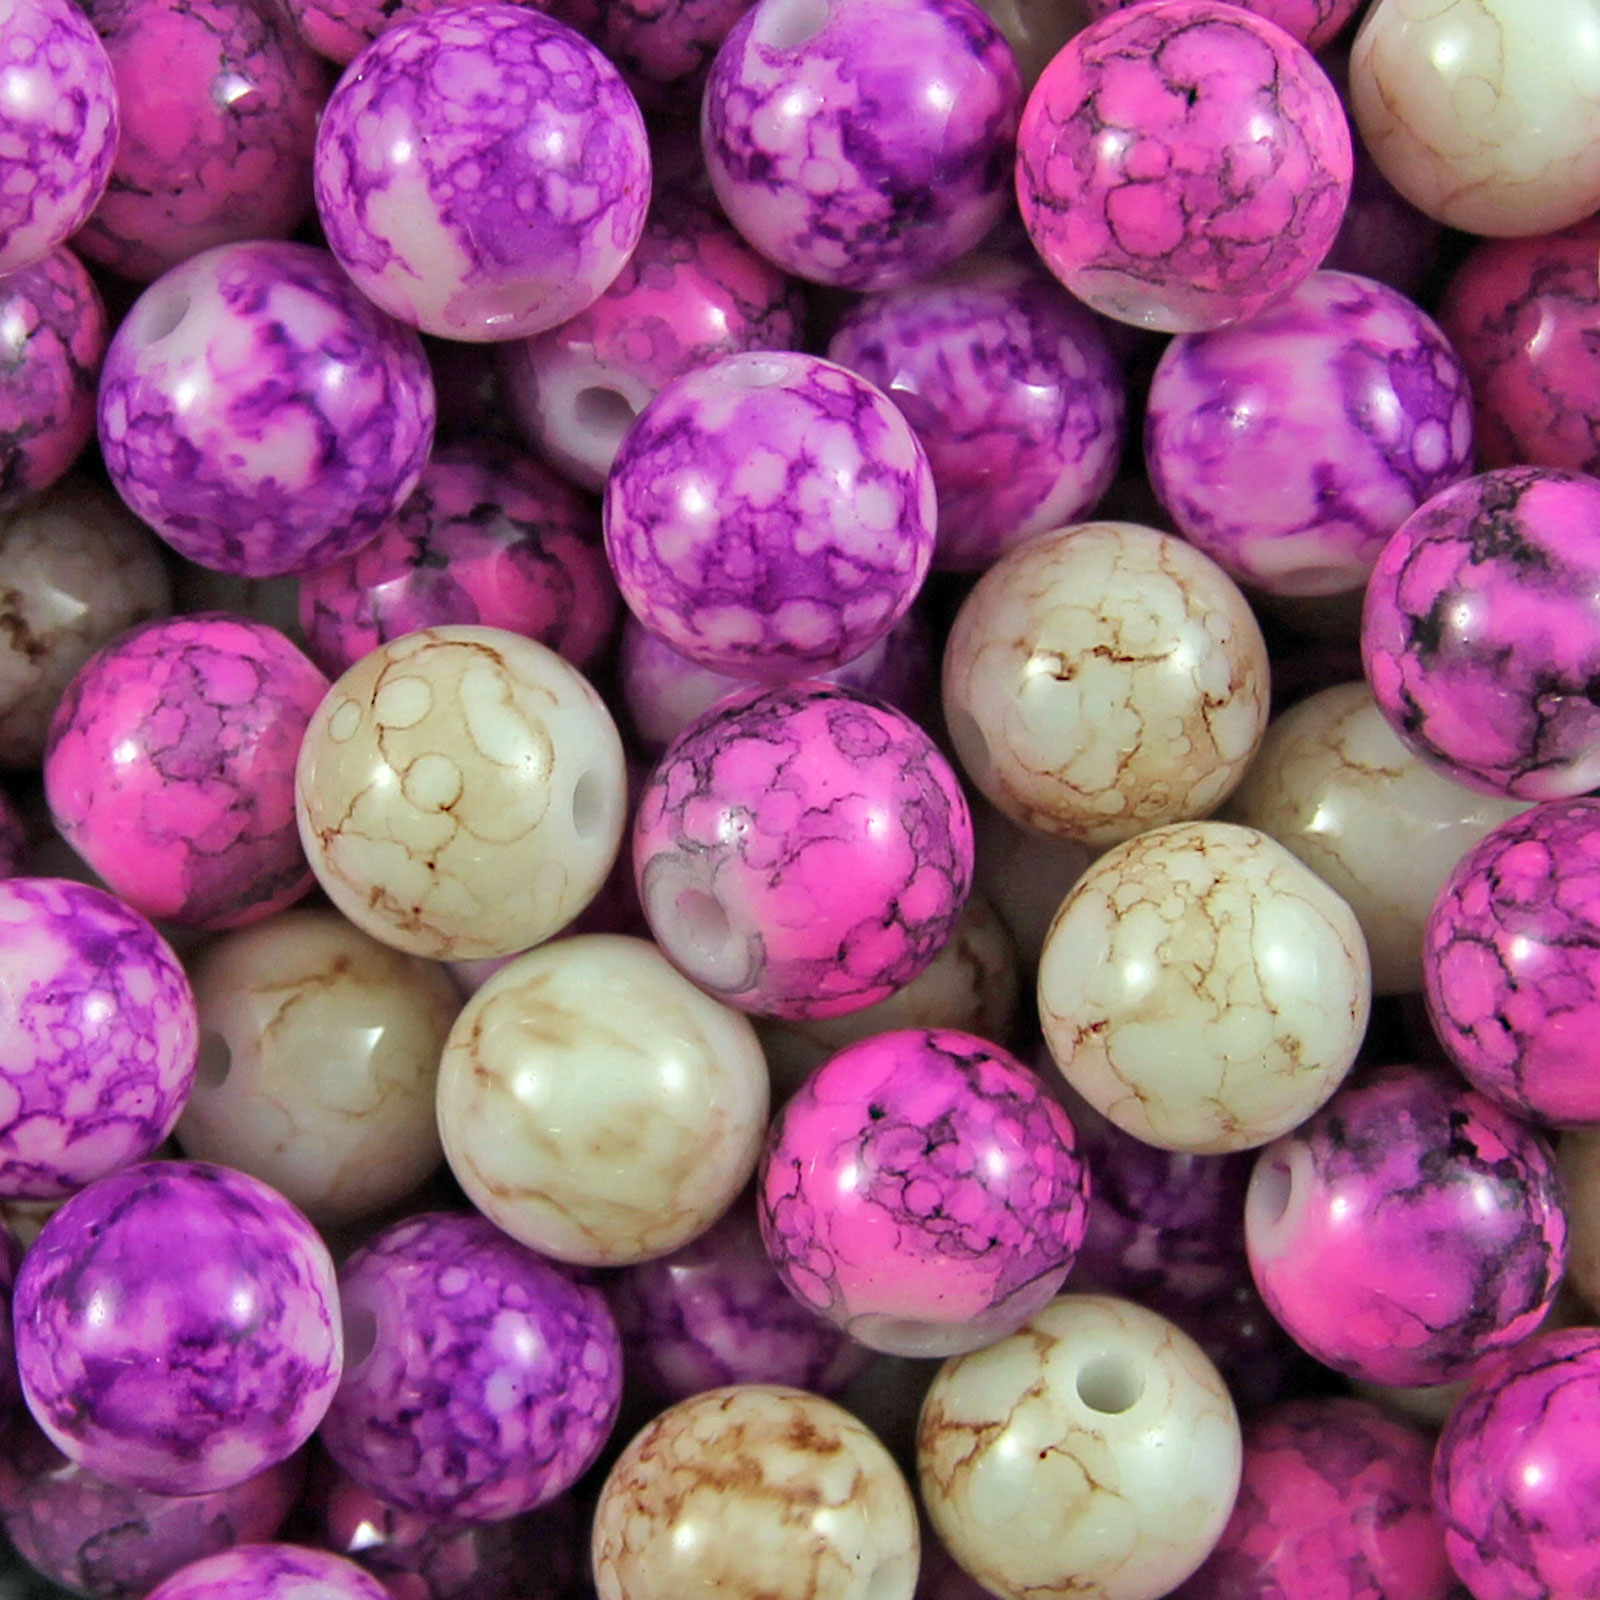 50-200-Glass-Mottle-Marble-Effect-Round-Beads-Choose-6mm-8mm-amp-10mm